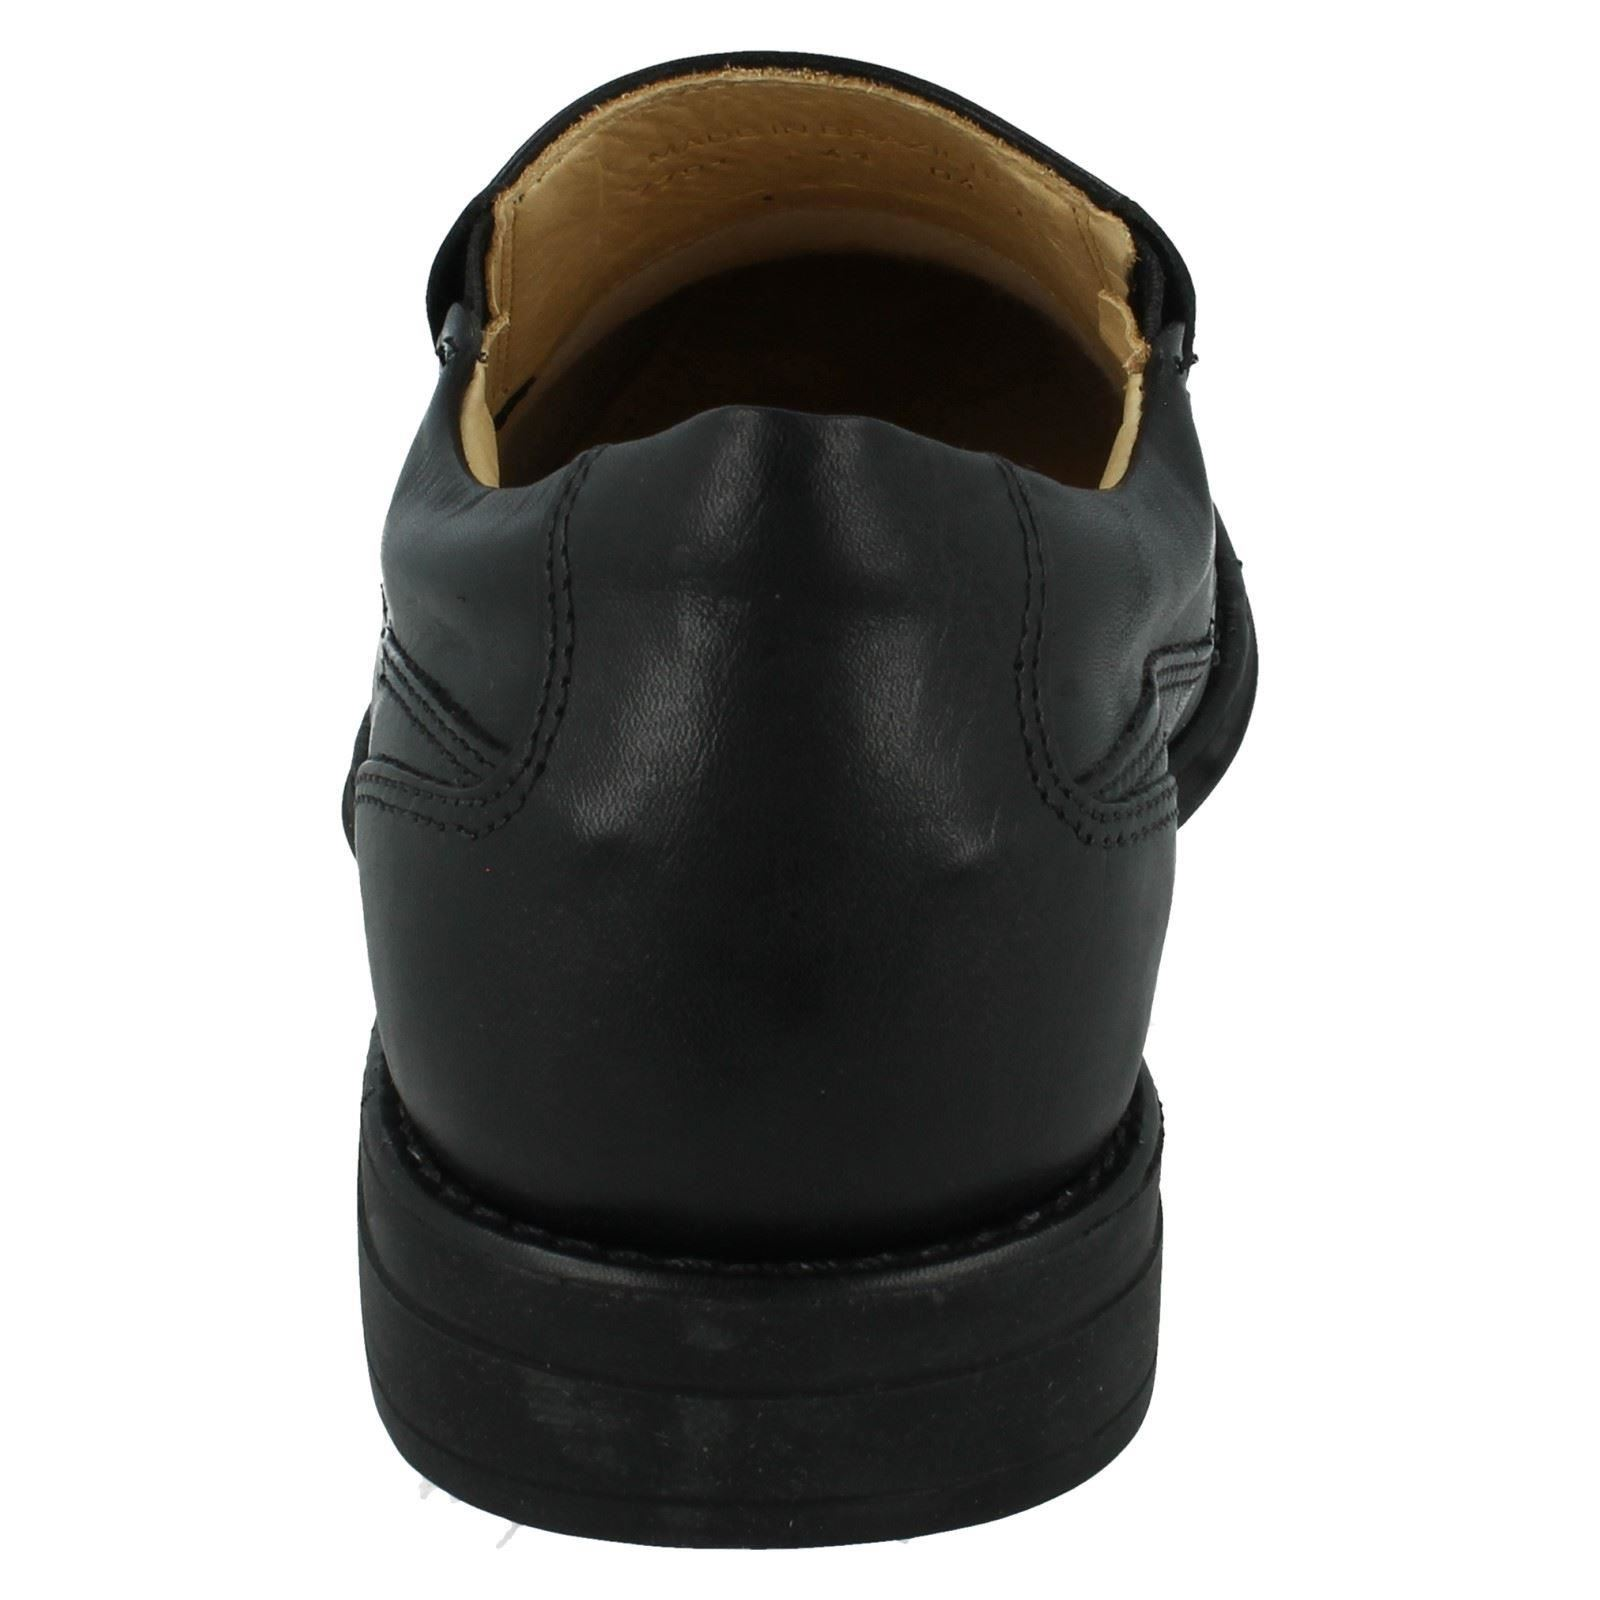 Mens Anatomic & Co Formal Shoes Style - Poloni